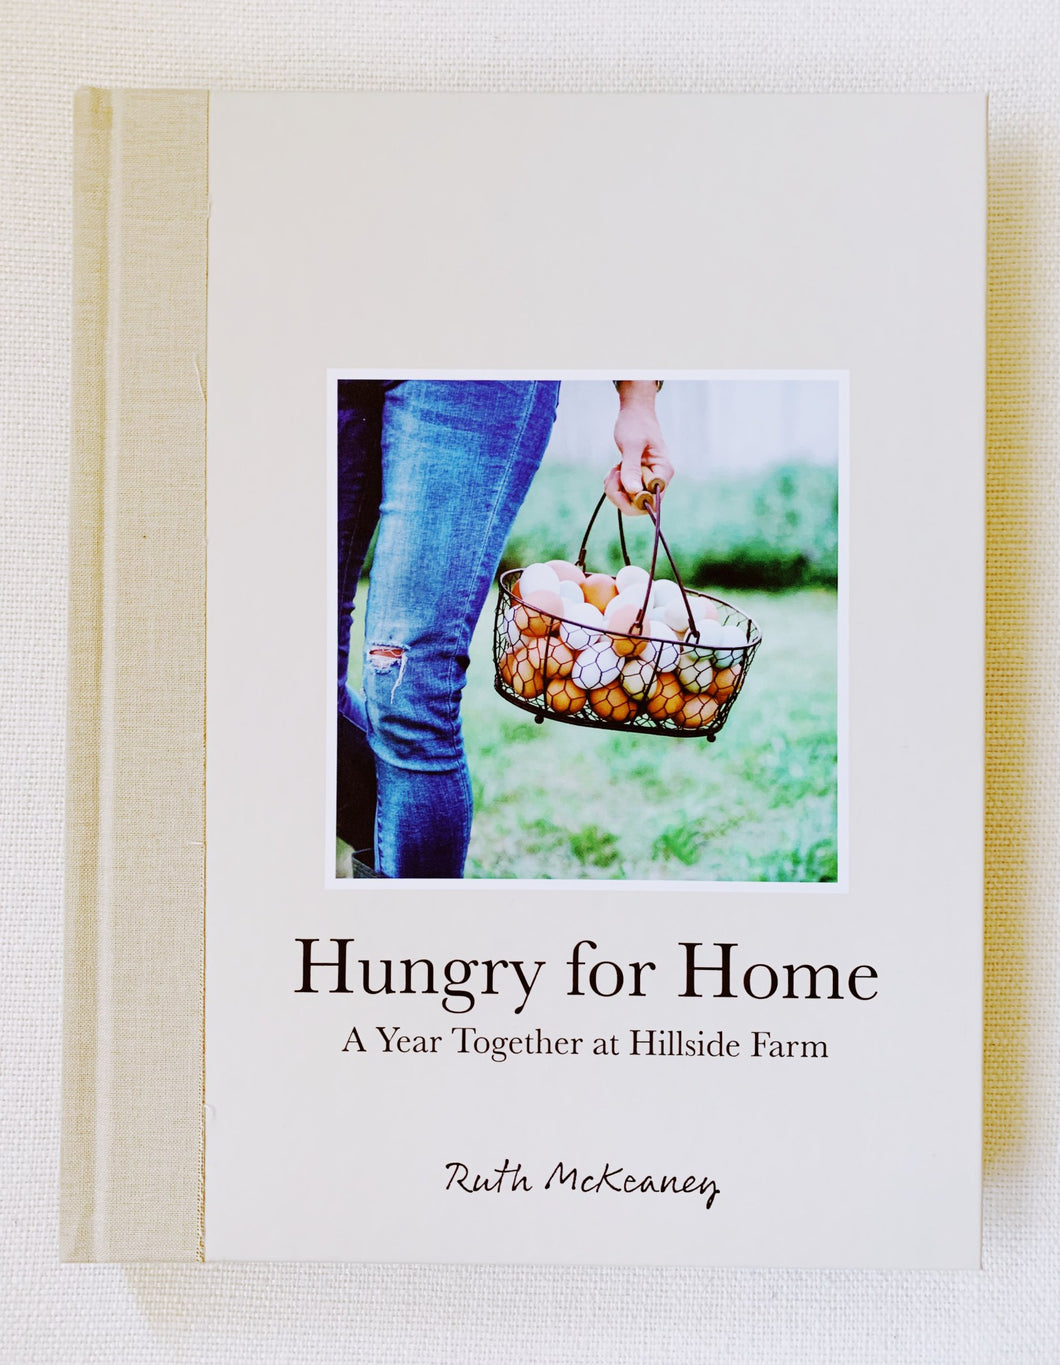 Hungry for Home: A Year Together at Hillside Farm